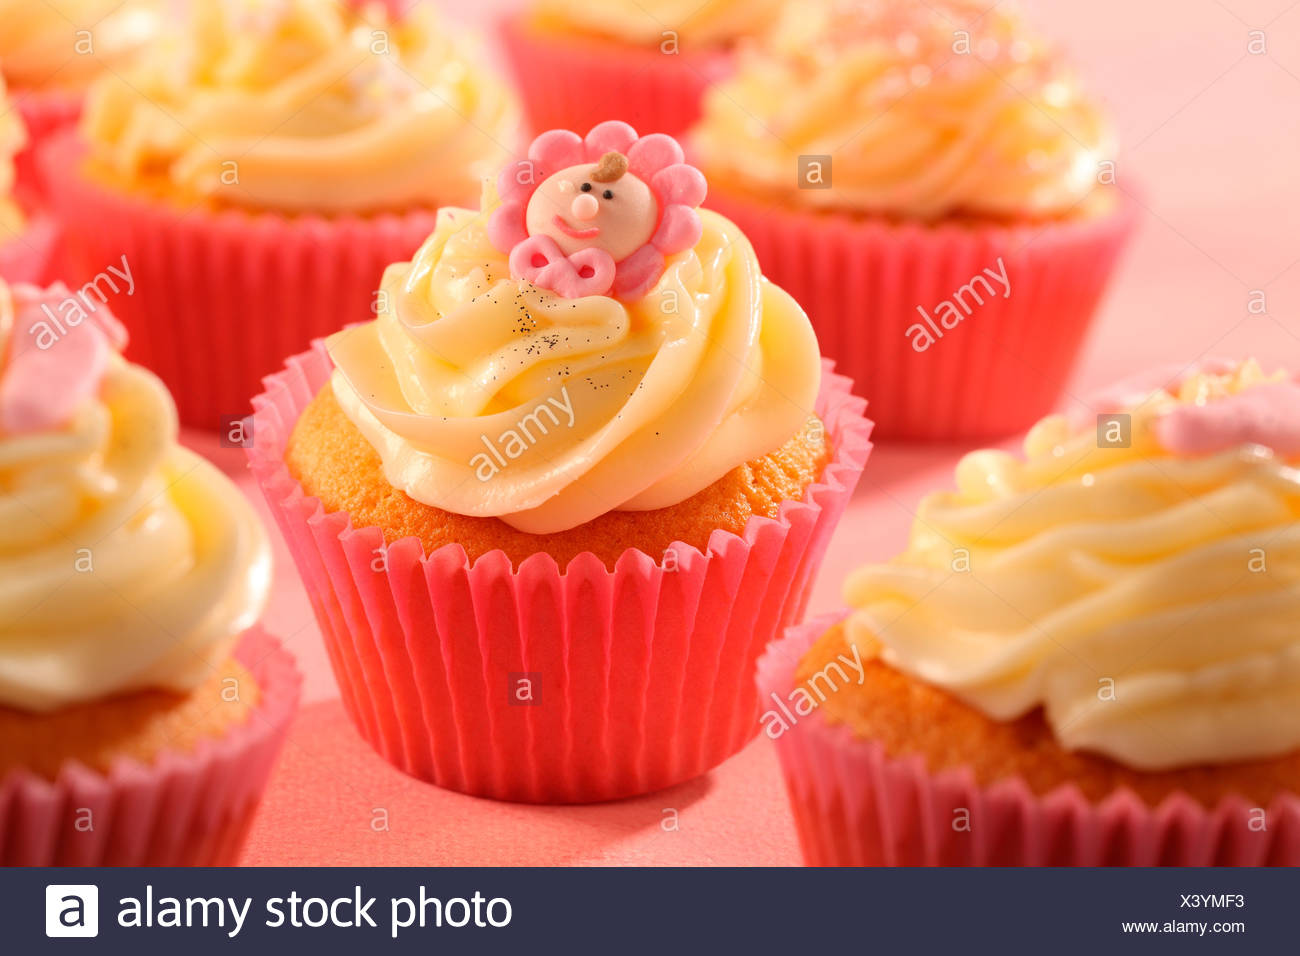 Pink Baby Shower Cupcakes Stock Photo 277818663 Alamy